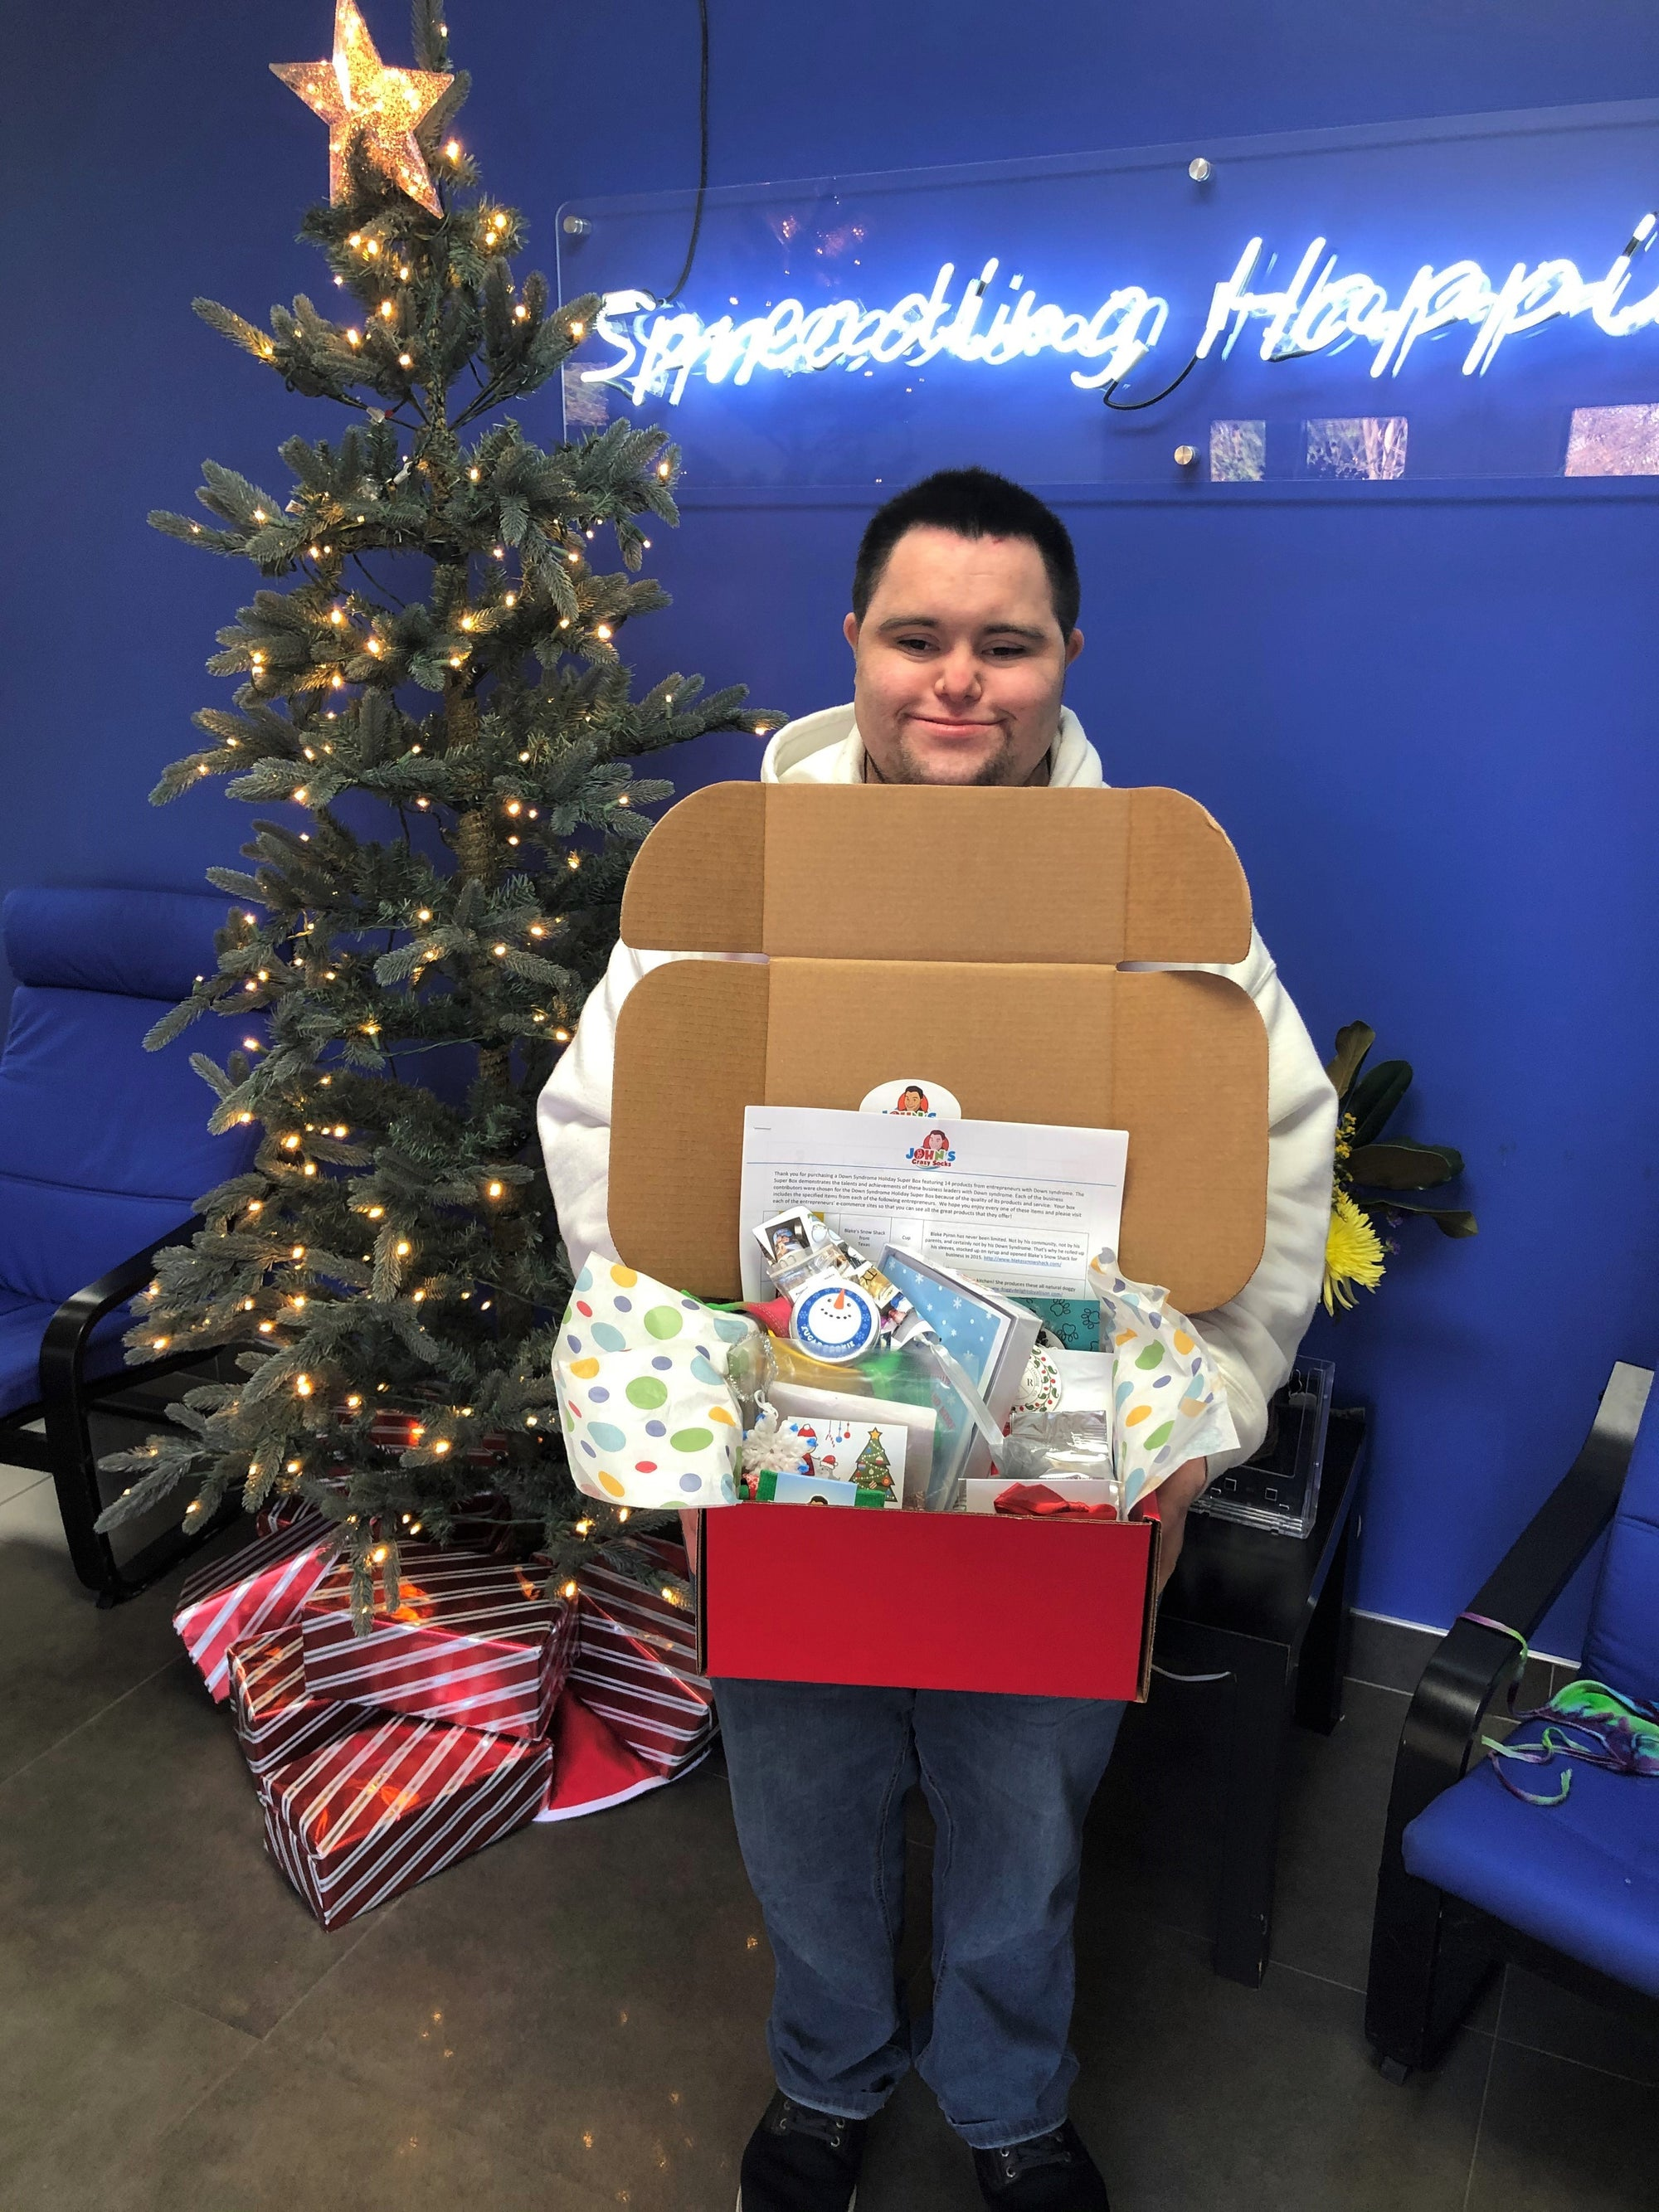 Down Syndrome Holiday Super Box Showcases Entrepreneurs with Down Syndrome